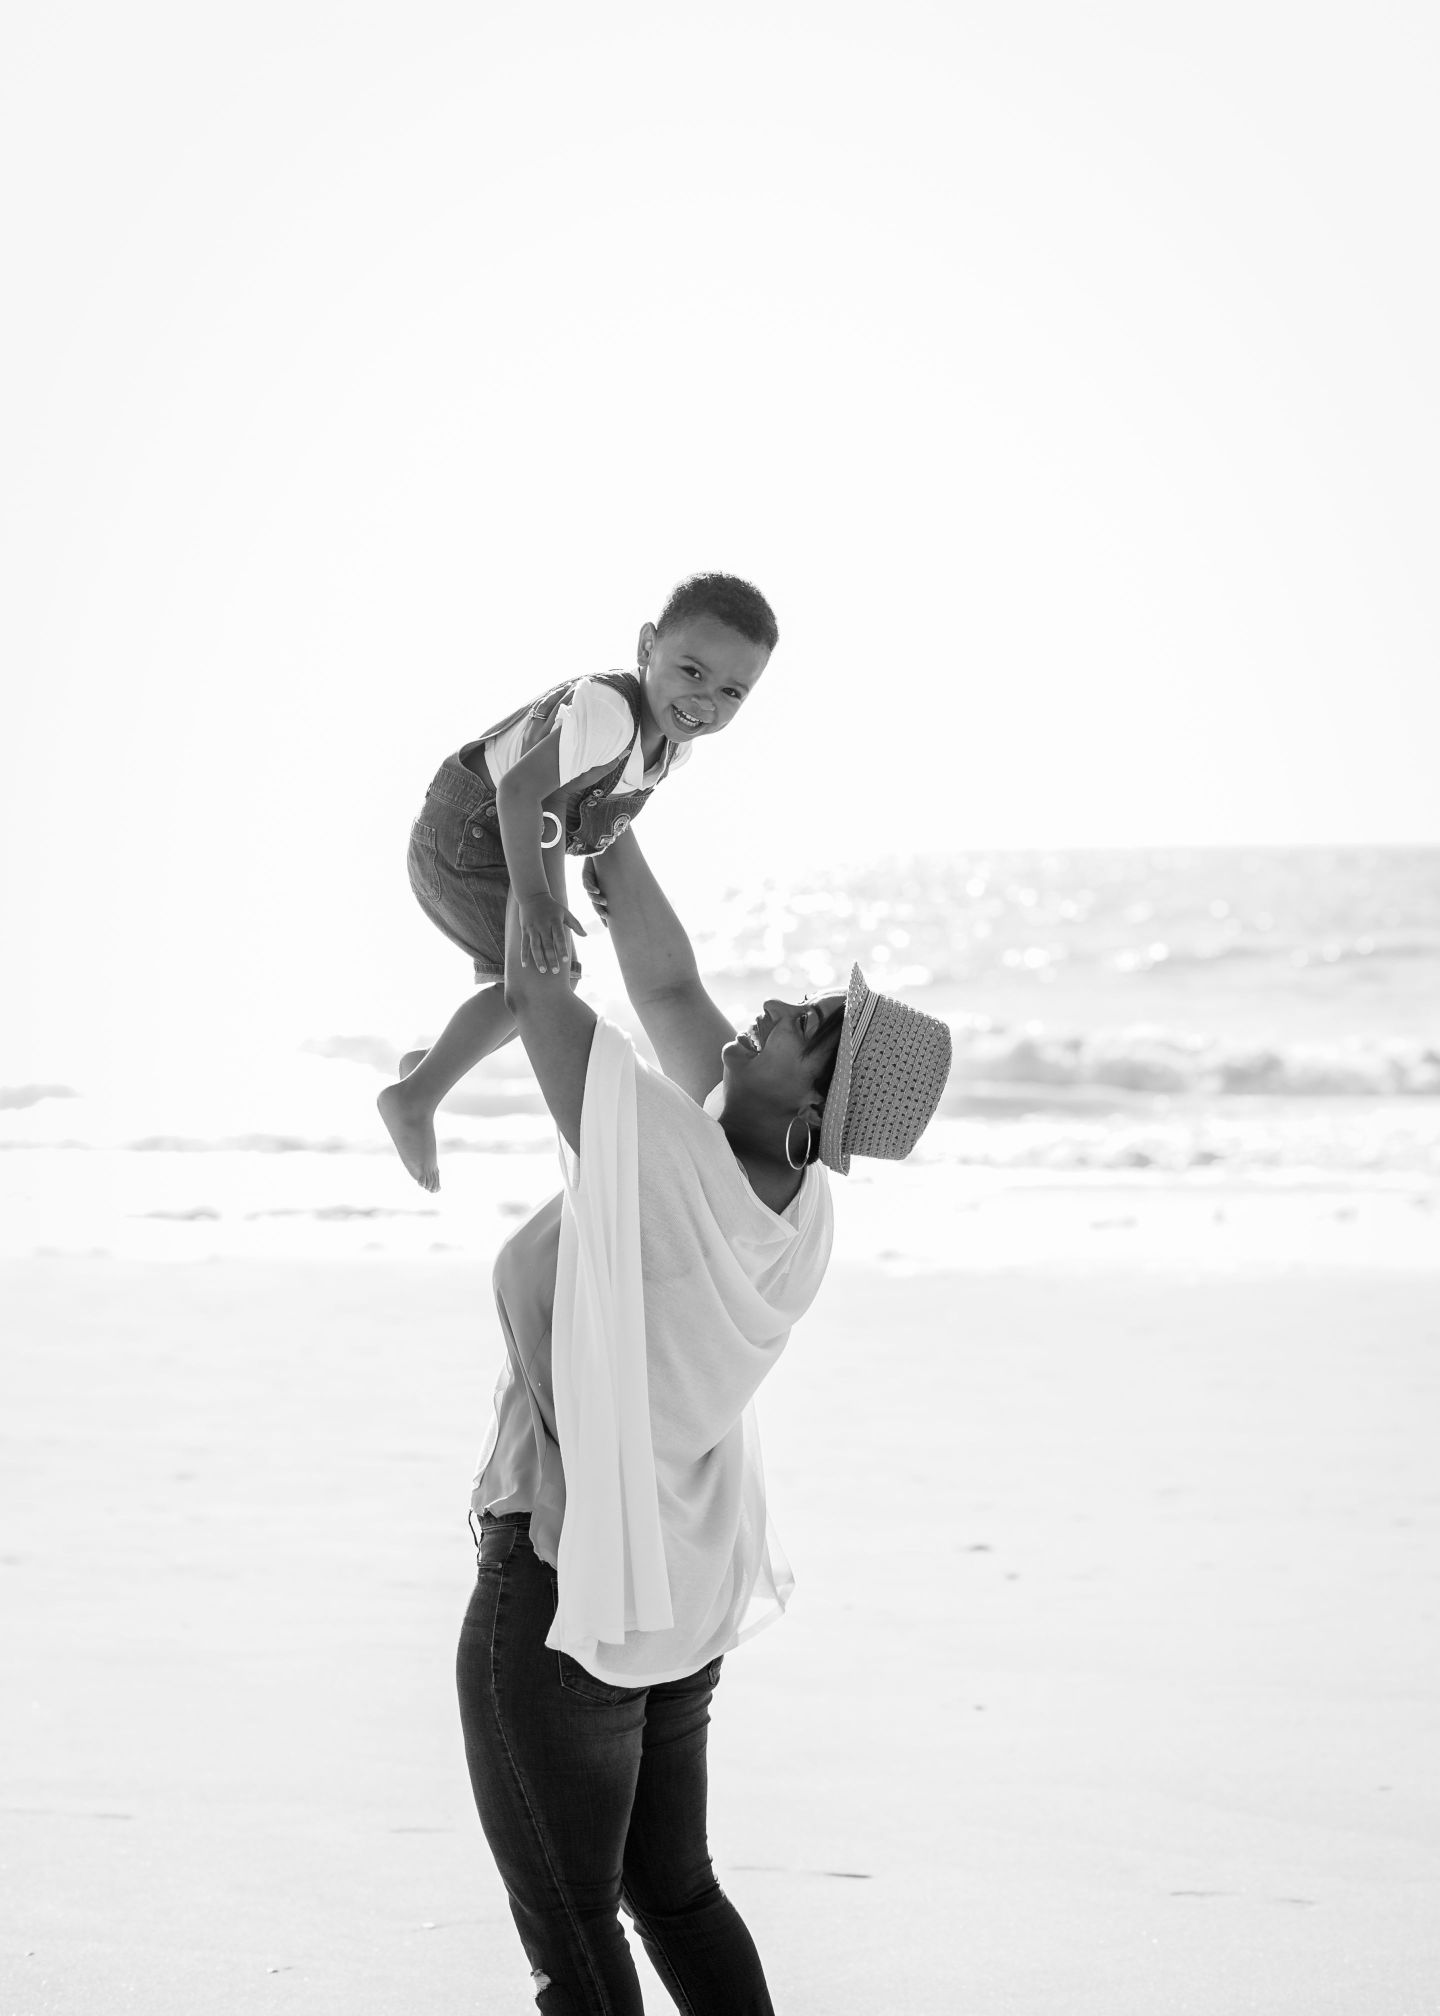 DSC_7923-1440x2016 Beach Family Photos: How To Make the Most of Your Beach Photo Shoot